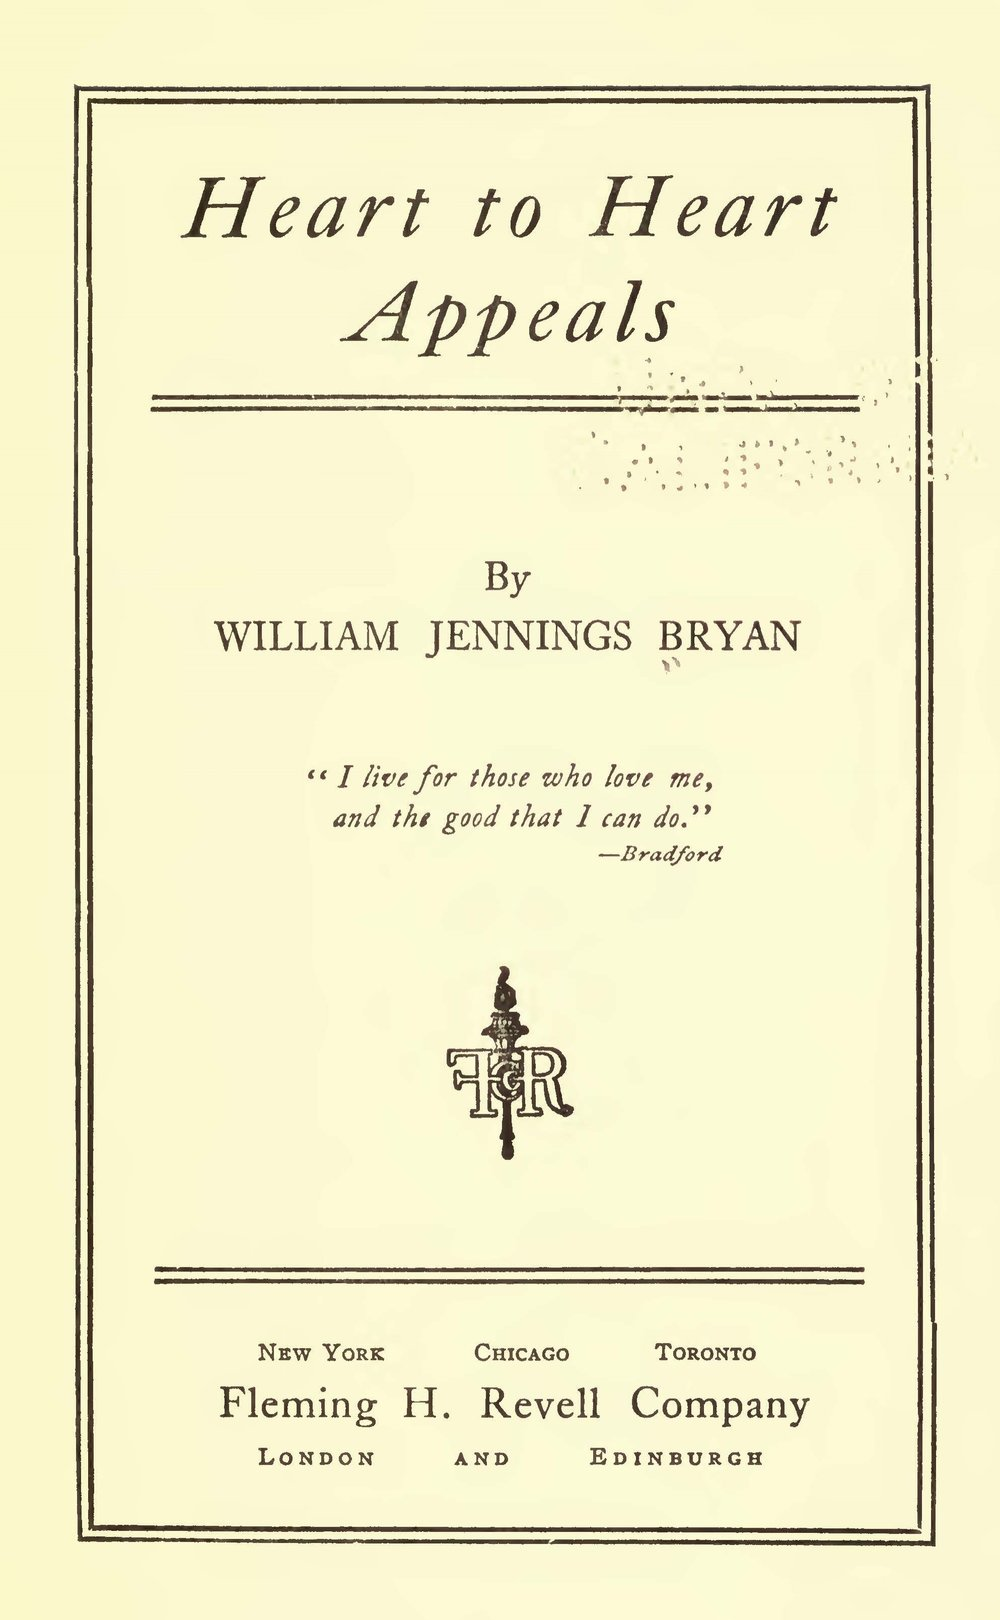 Bryan, Sr., William Jennings, Heart to Heart Appeals Title Page.jpg